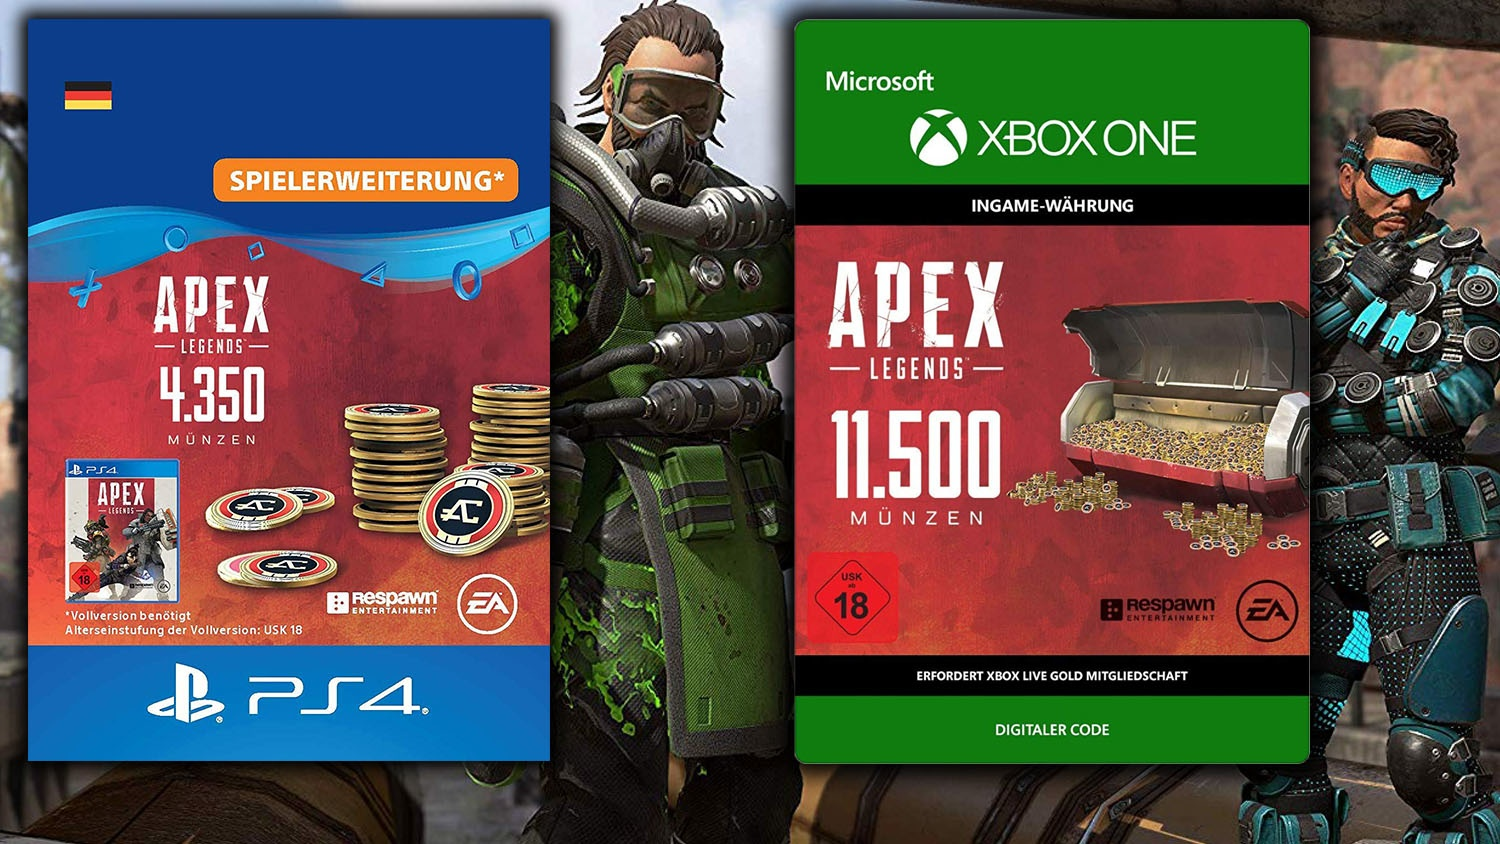 amazon angebot 25 prozent rabatt auf apex legends coins. Black Bedroom Furniture Sets. Home Design Ideas